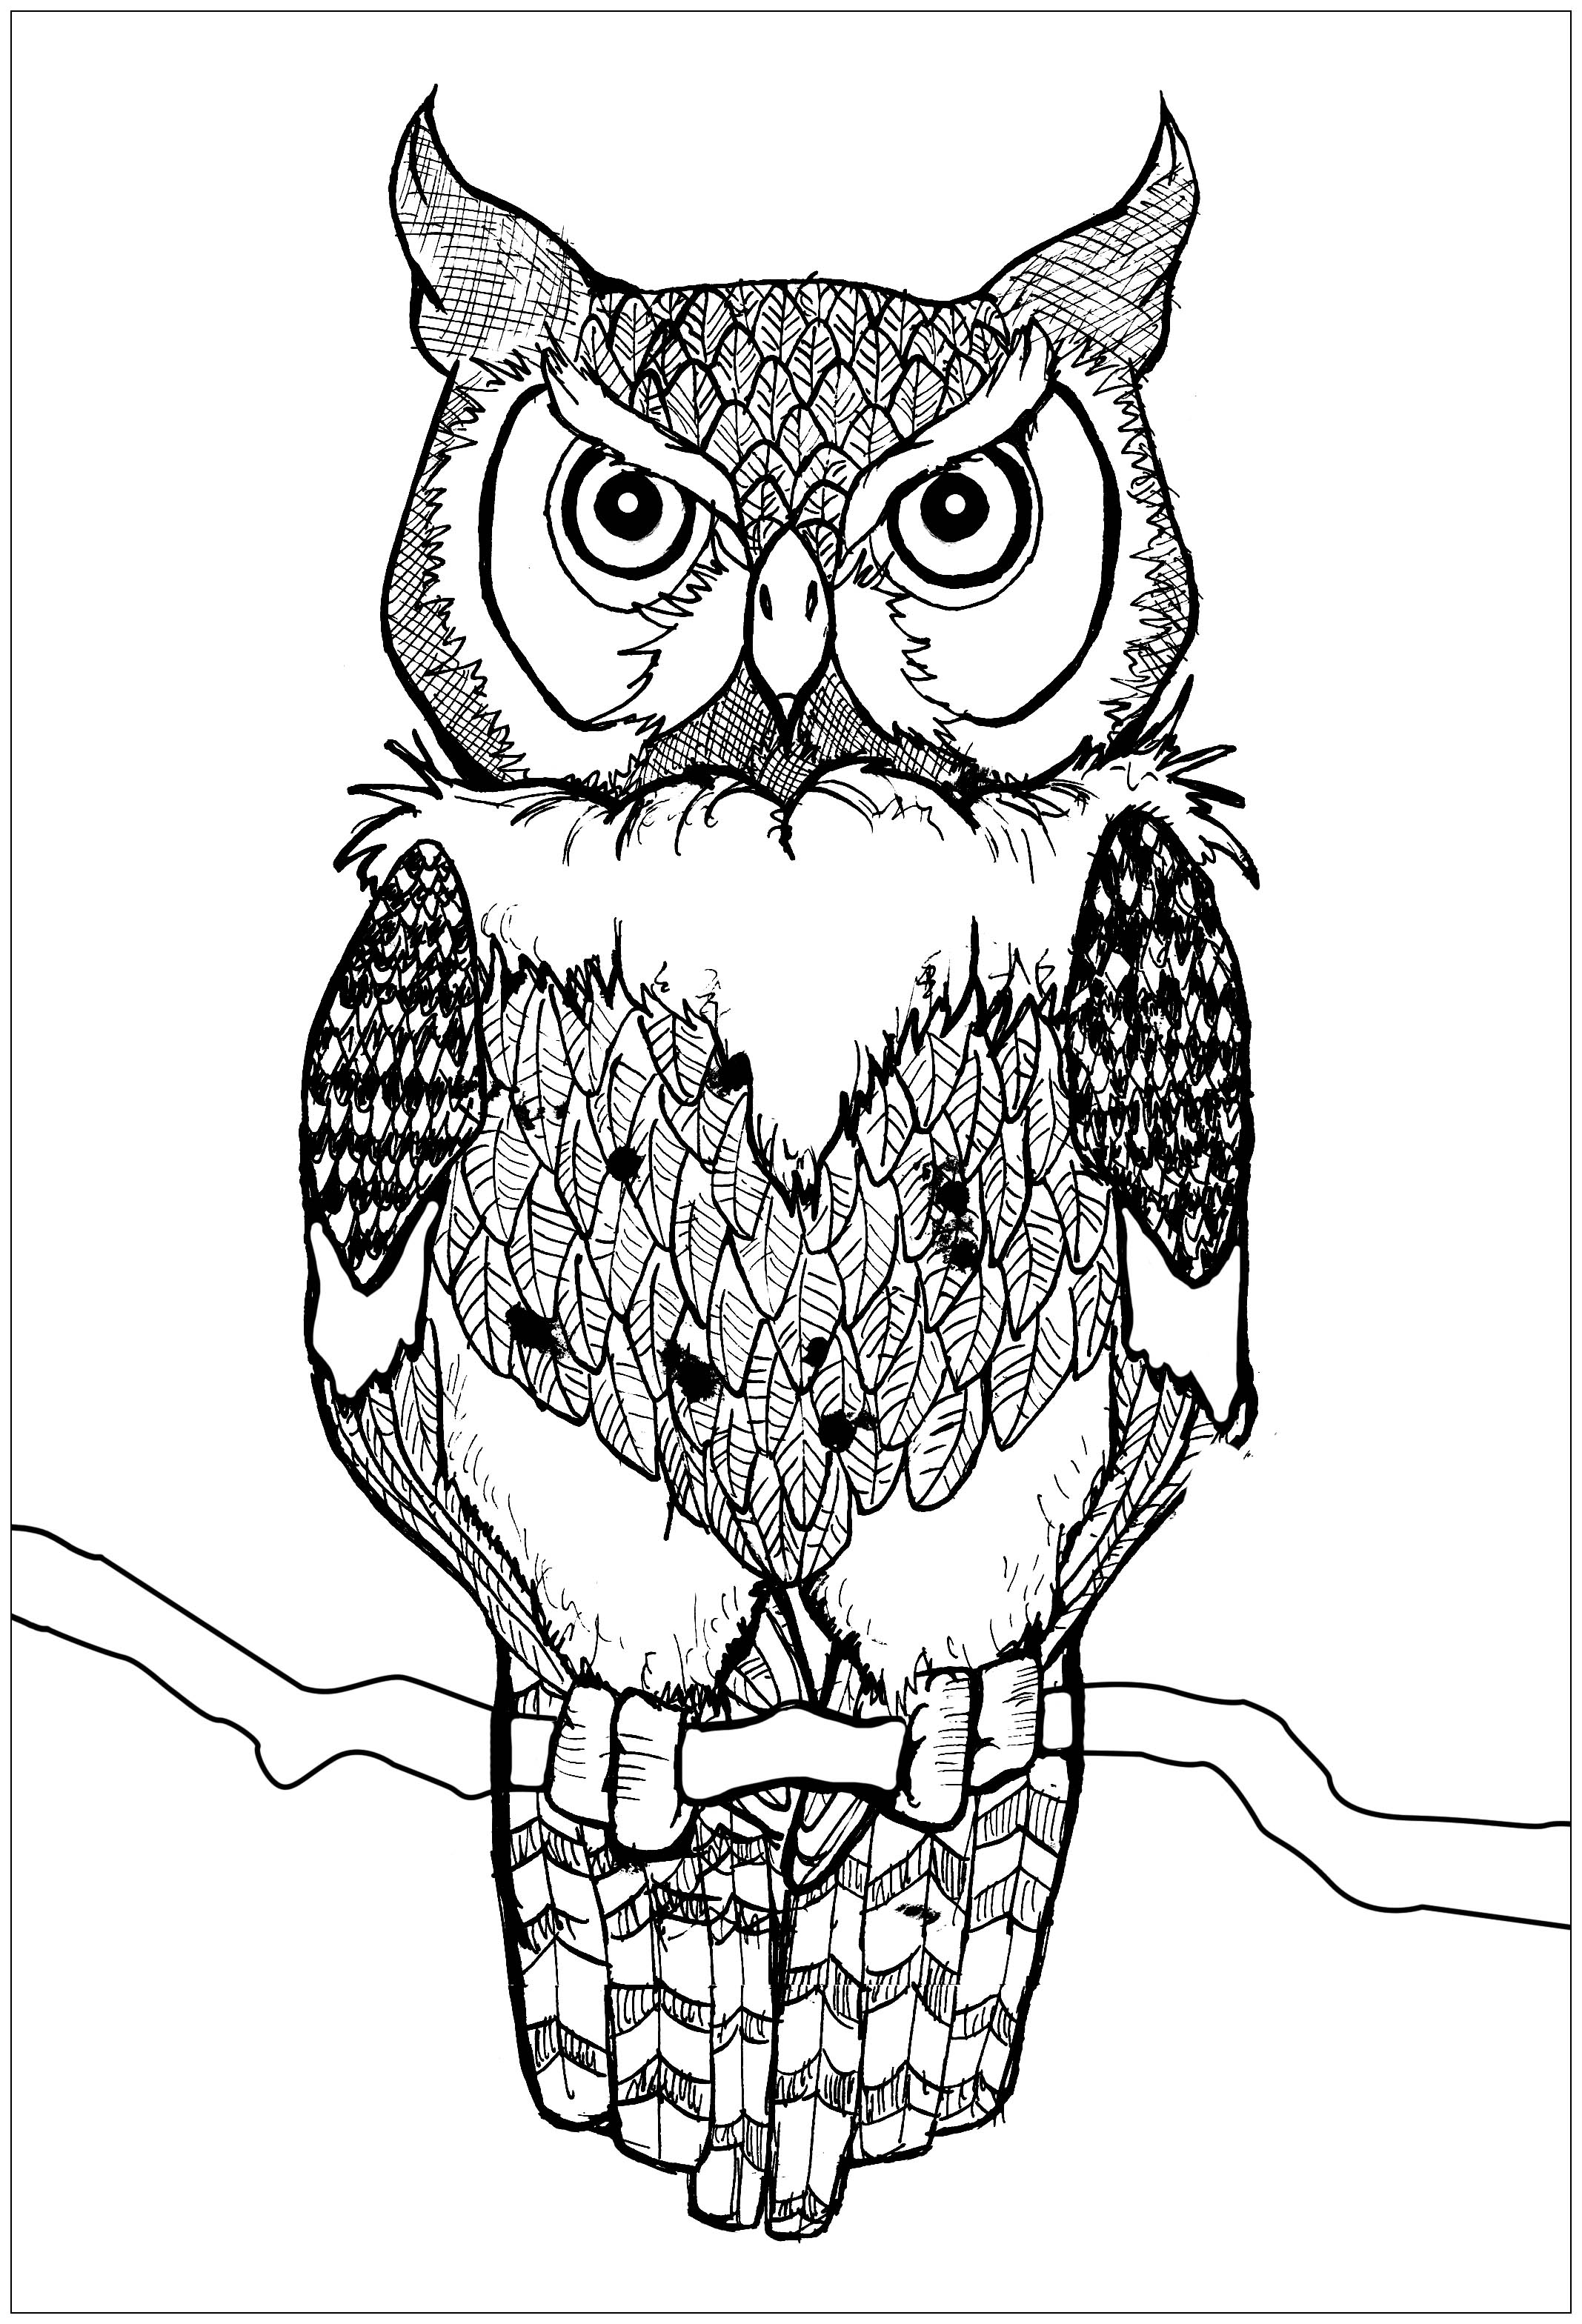 Owls to print - Owls Kids Coloring Pages